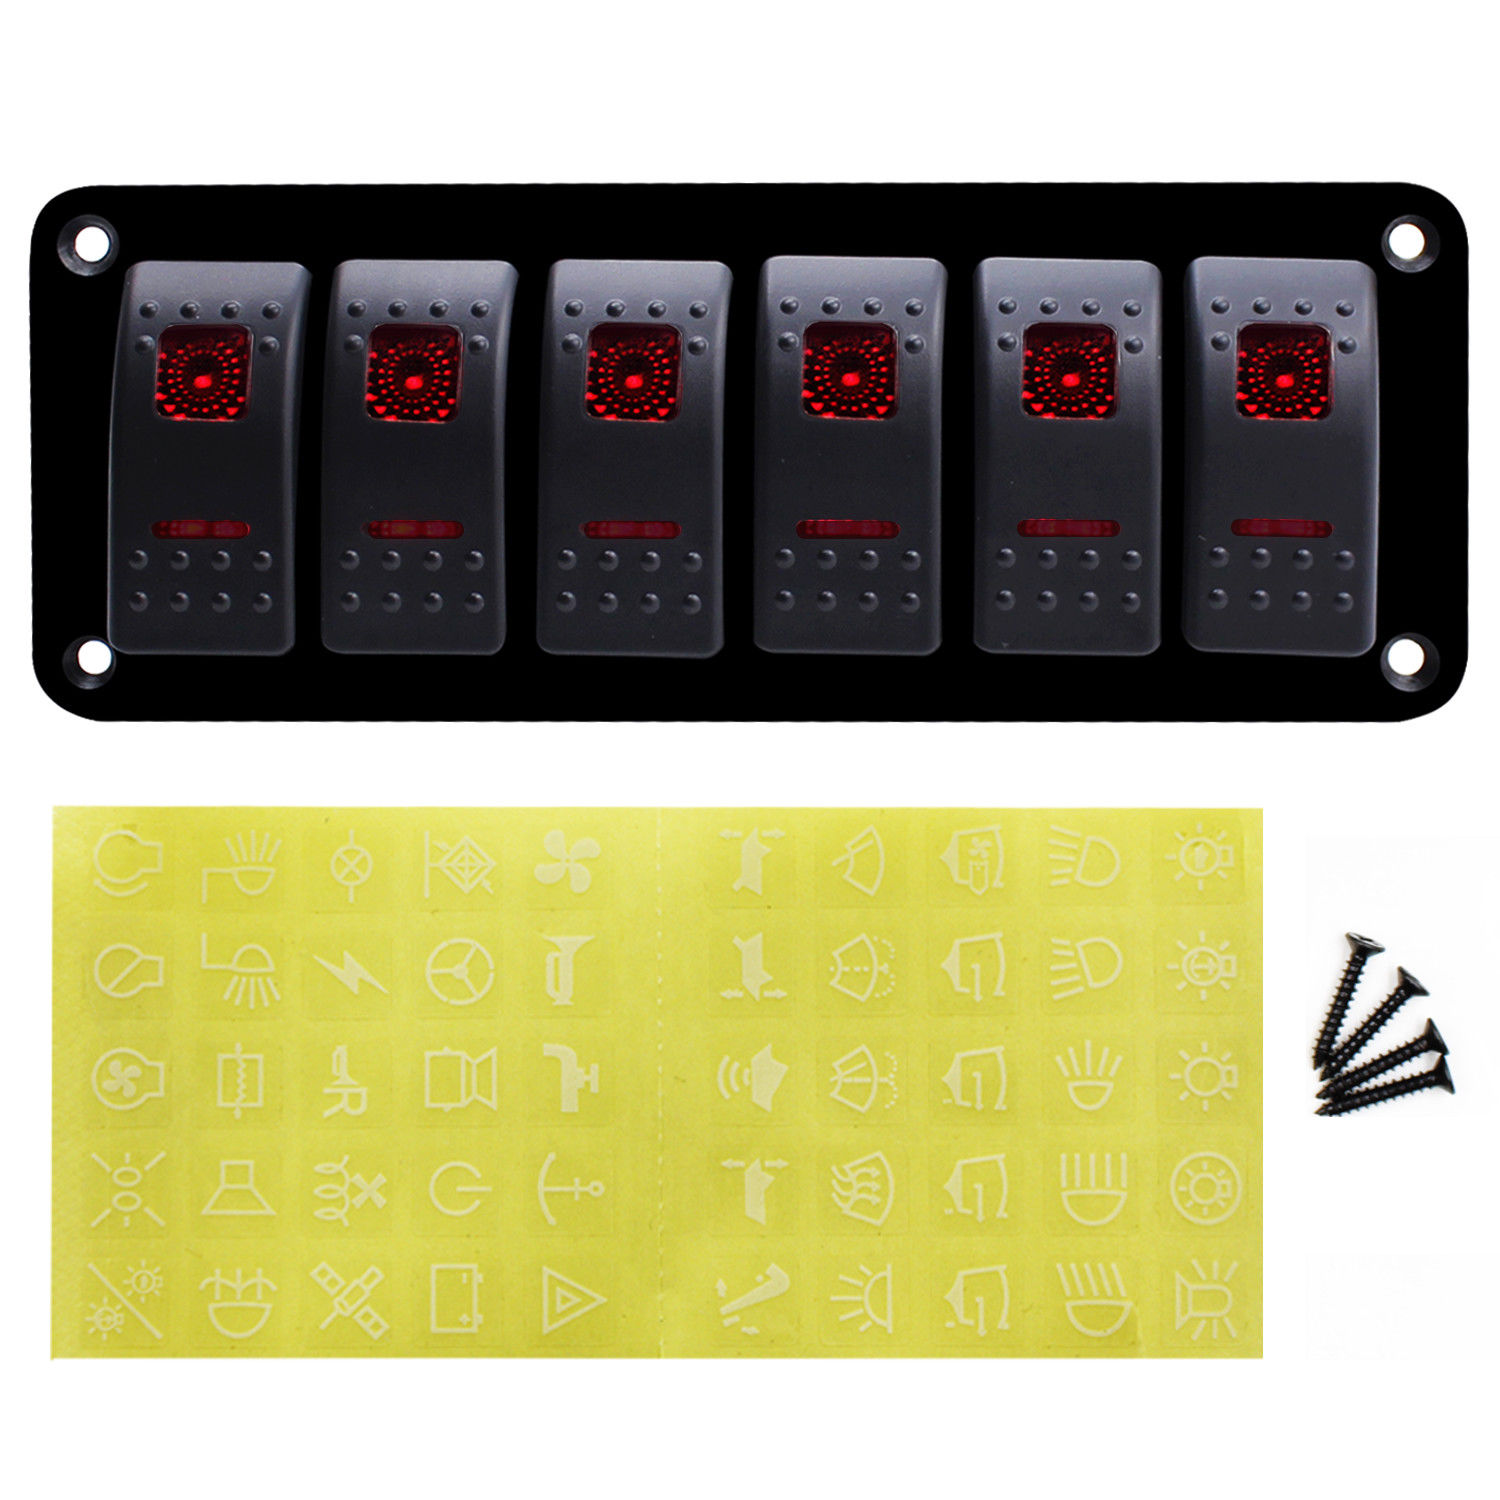 NEW 6 Gang 2LED Light Rocker Switch Panel Circuit Breaker 12V-24V Boat Marine e6c2 cwz3e 2500 2048 2000 1800 1500 1200 1024 1000 p r e6c2 cwz3e rotary encoder have in stock